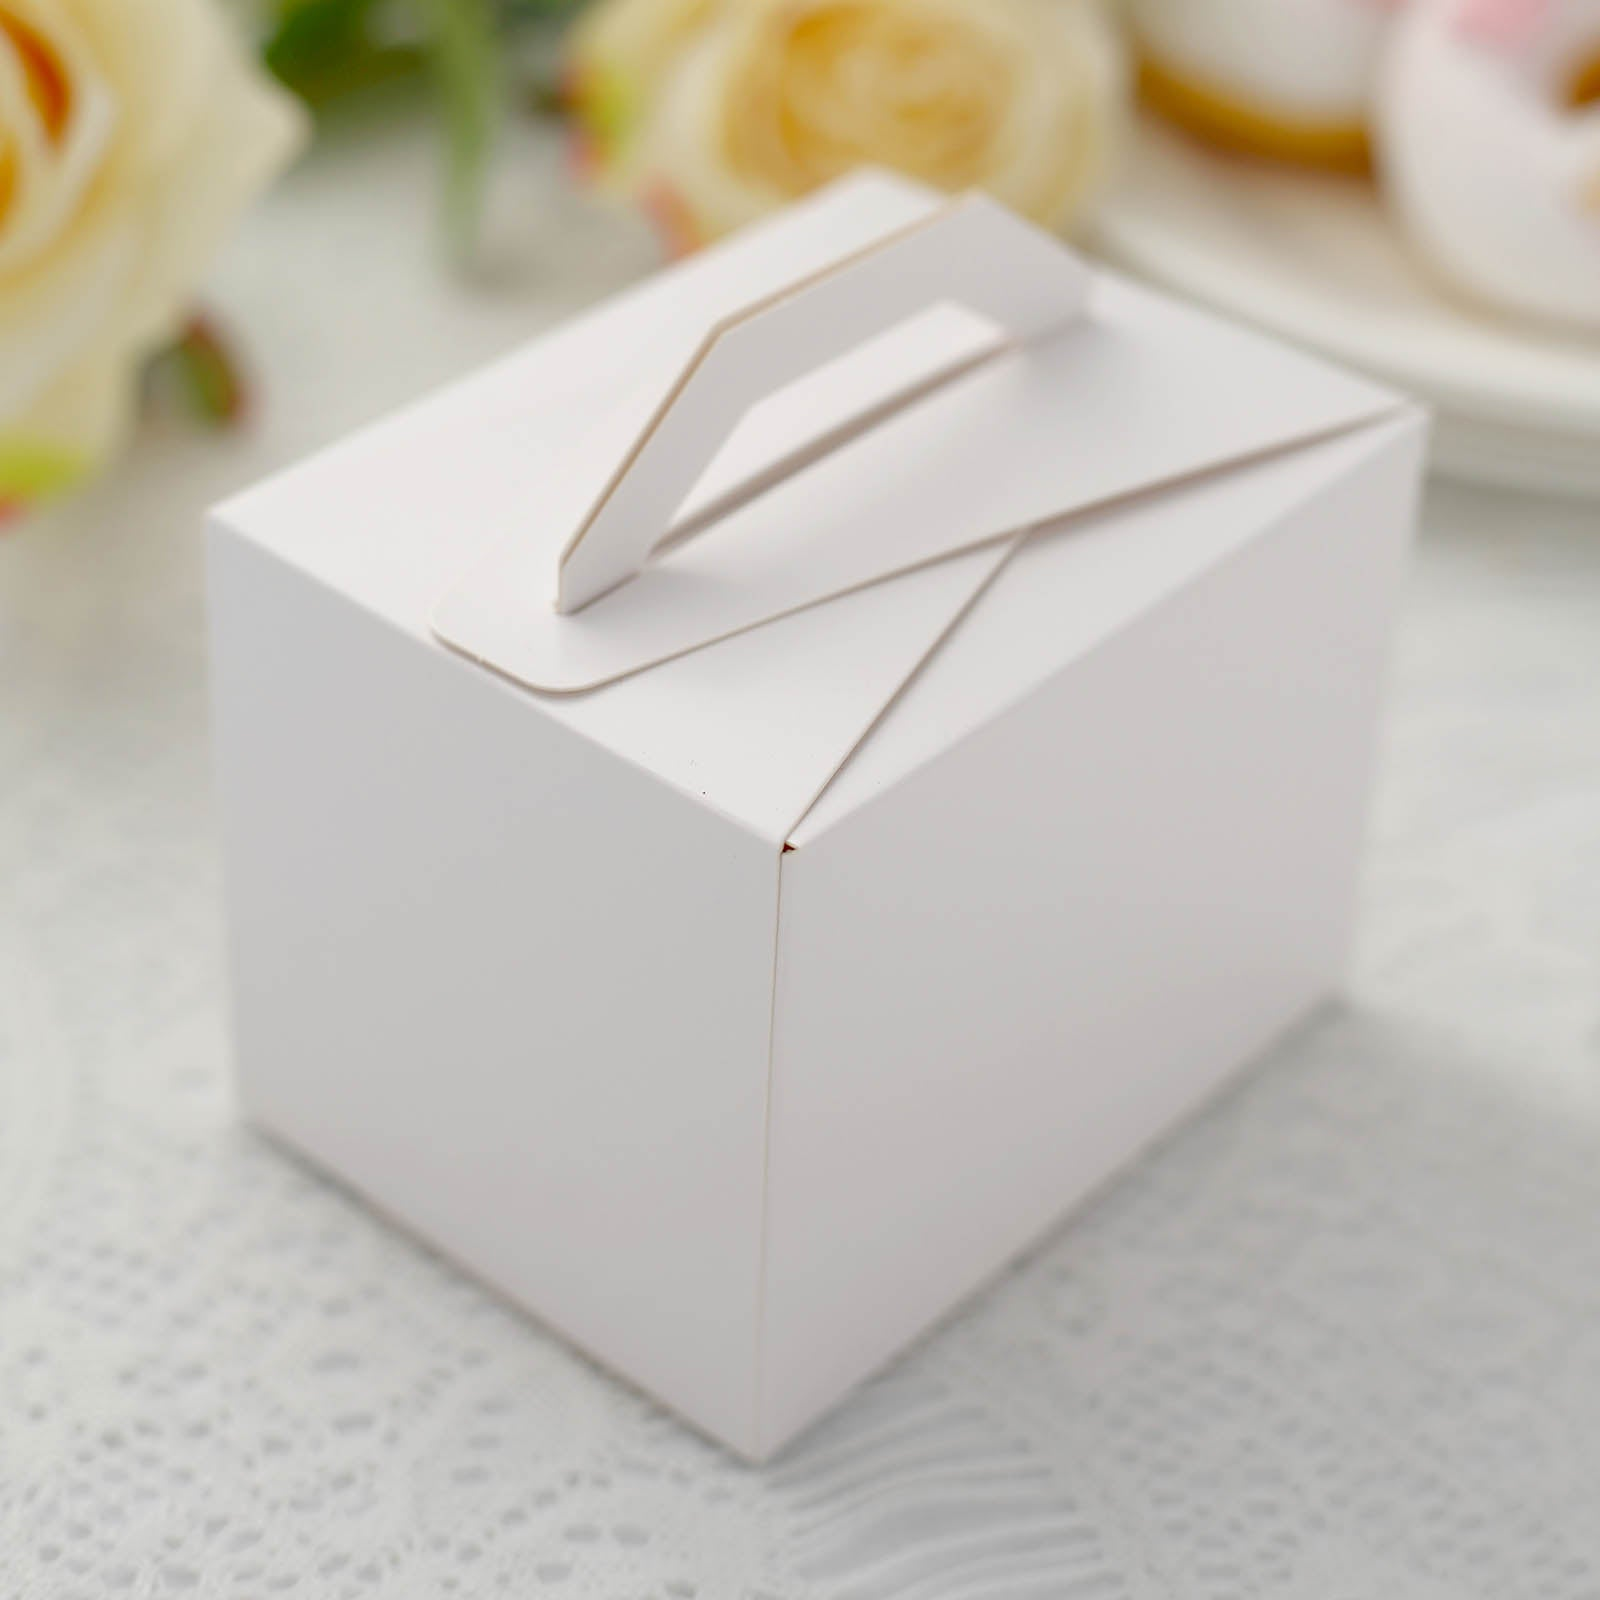 100 Tote Favor Boxes - White | eFavorMart